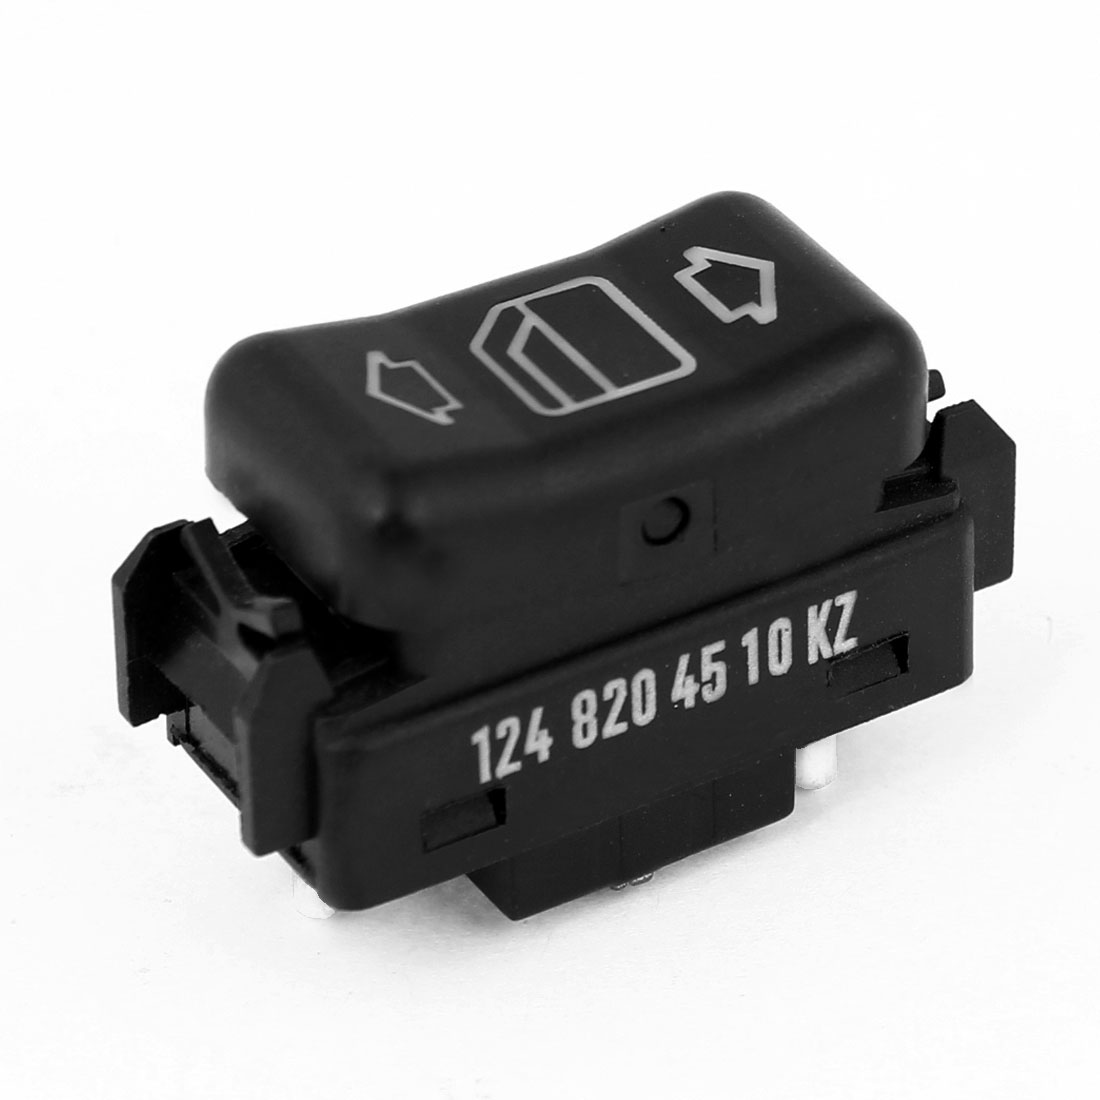 Momentary Passenger Power Window Switch 5 Pins Replacement for Mercedes-Benz